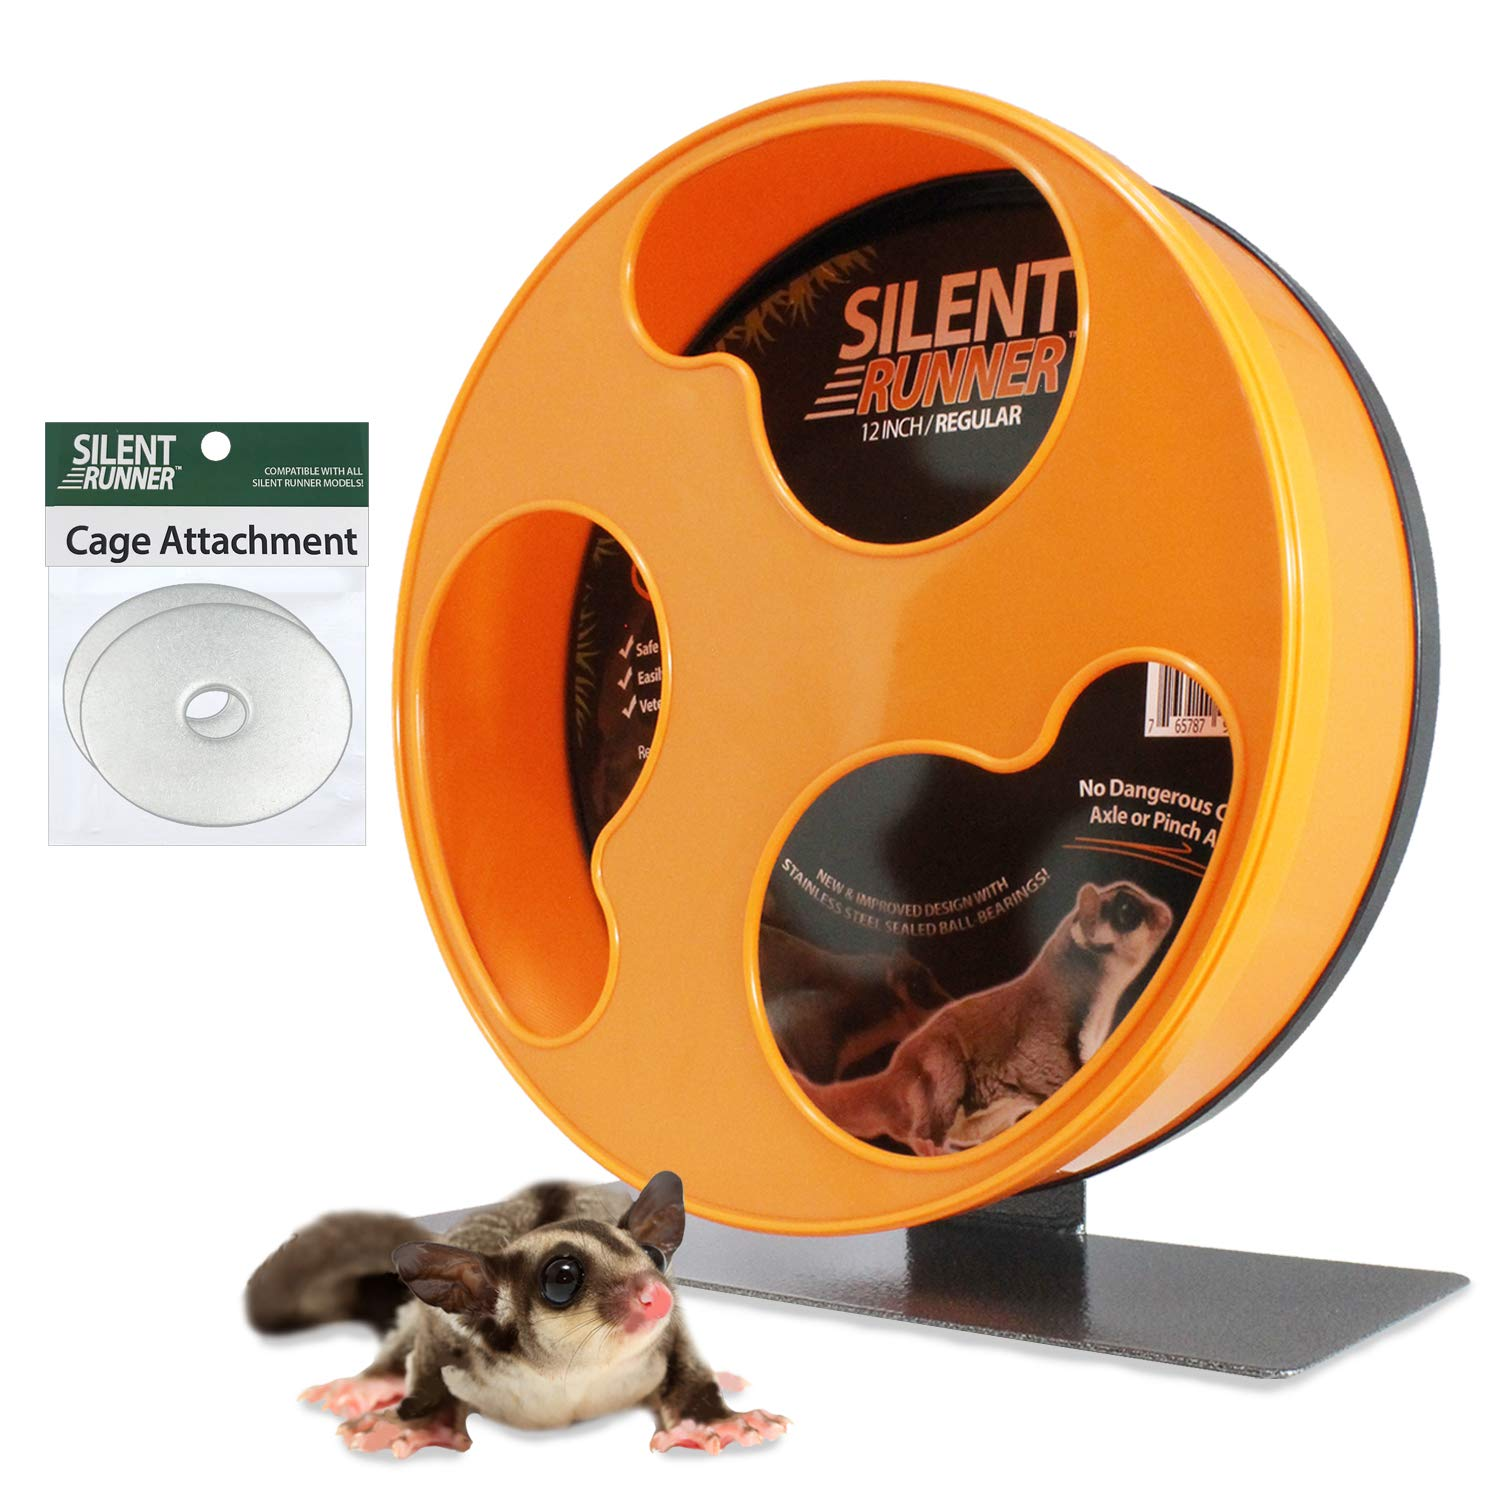 Exotic Nutrition Silent Runner 12'' Regular - Durable Exercise Wheel + Cage Attachment Hardware - for Sugar Gliders, Female Rats, Hamsters, Mice and Other Small Pets by Exotic Nutrition